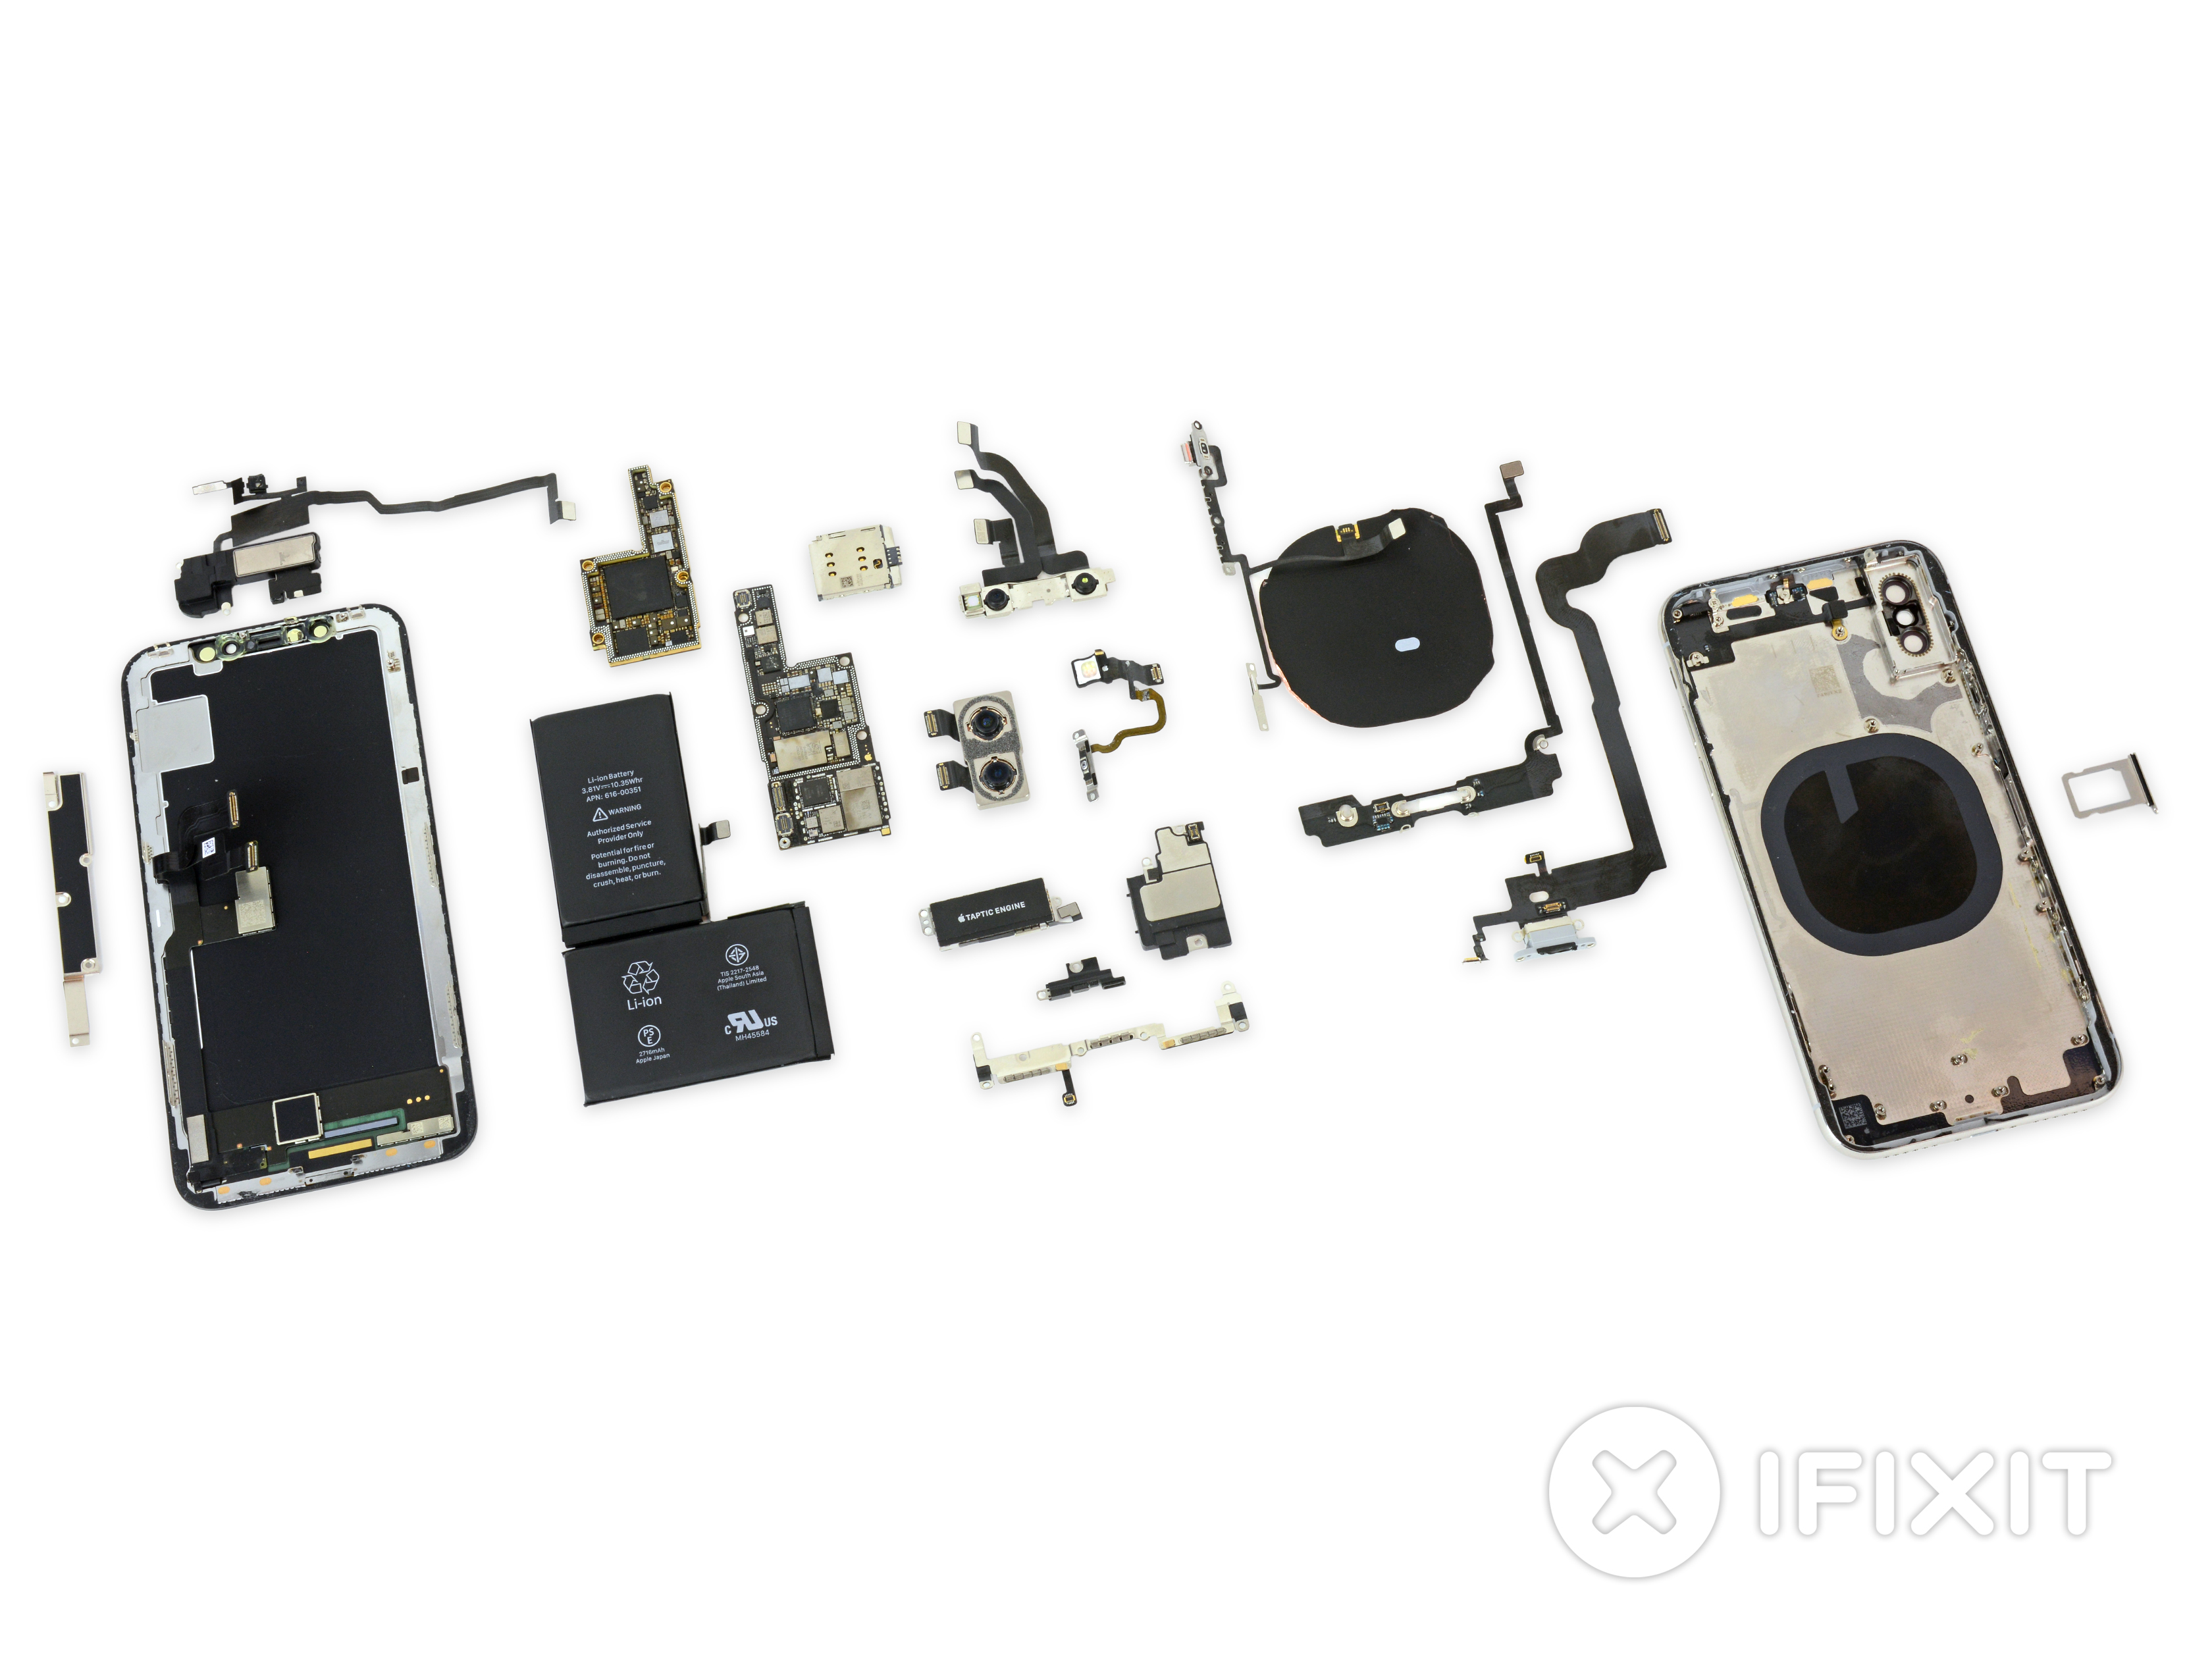 iphone 4 disassembly diagram double bubble x teardown ifixit